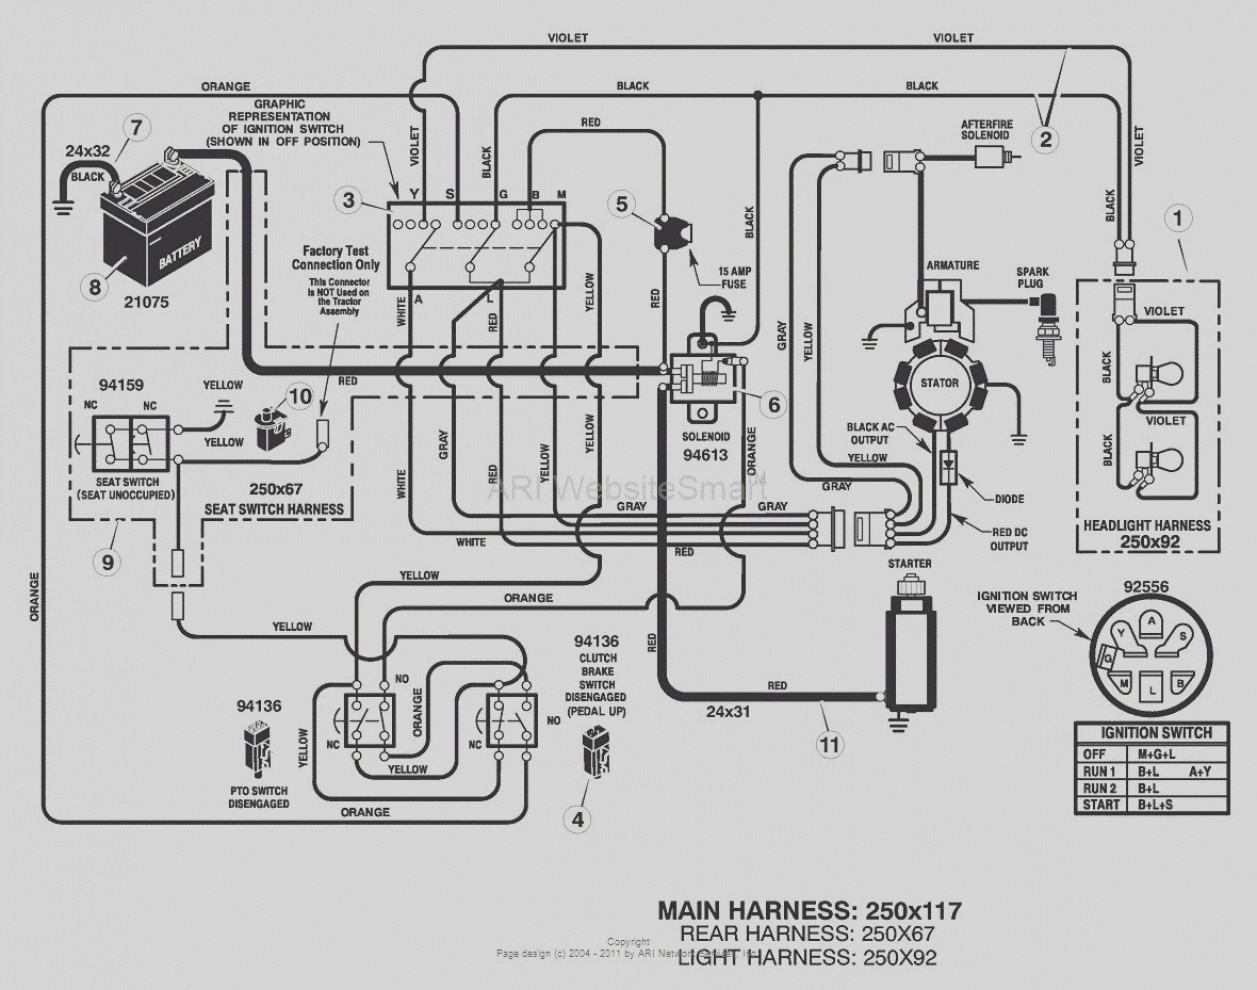 AY_5991] Sears Tractor Wiring Diagram In Addition Craftsman Riding Mower Wiring  Schematic WiringPenghe Isra Mohammedshrine Librar Wiring 101